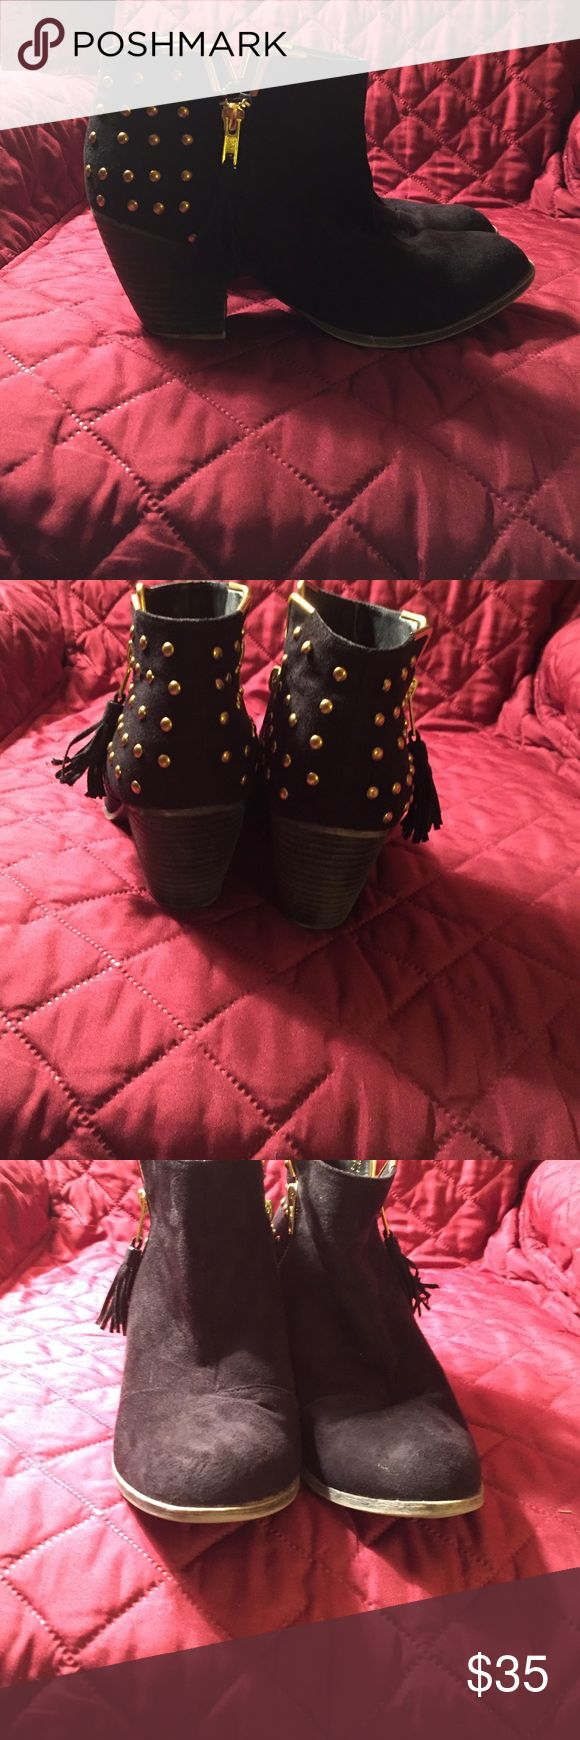 Shoe dazzle studded ankle boot Studded ankle boot in black suede with gold studs. Tassel zipper. Has wear to them but it is a stylish boot. Shoe Dazzle Shoes Ankle Boots & Booties